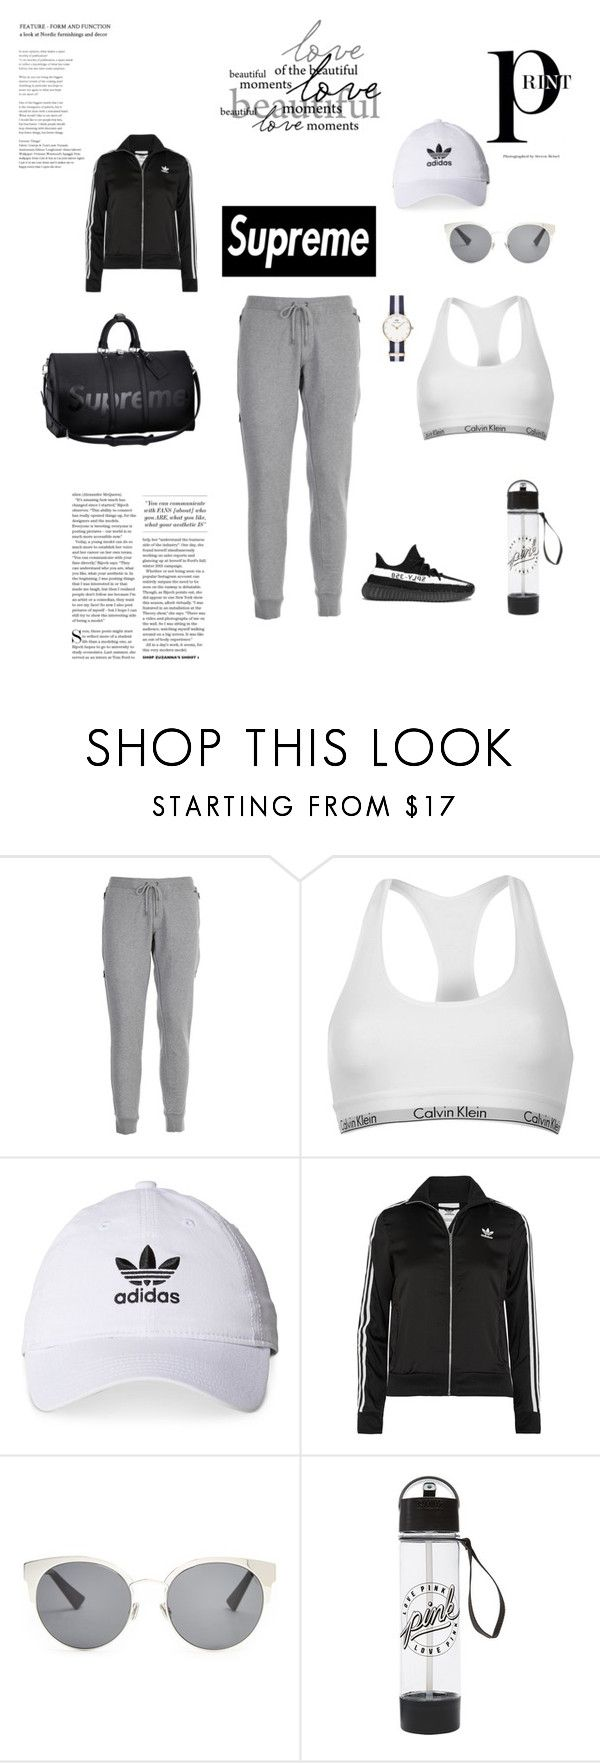 """""""Work hard play hard 💪🏻"""" by afrahsaud ❤ liked on Polyvore featuring Woolrich, Calvin Klein, adidas, adidas Originals, Christian Dior, Louis Vuitton, sport, supreme and statementcoats"""